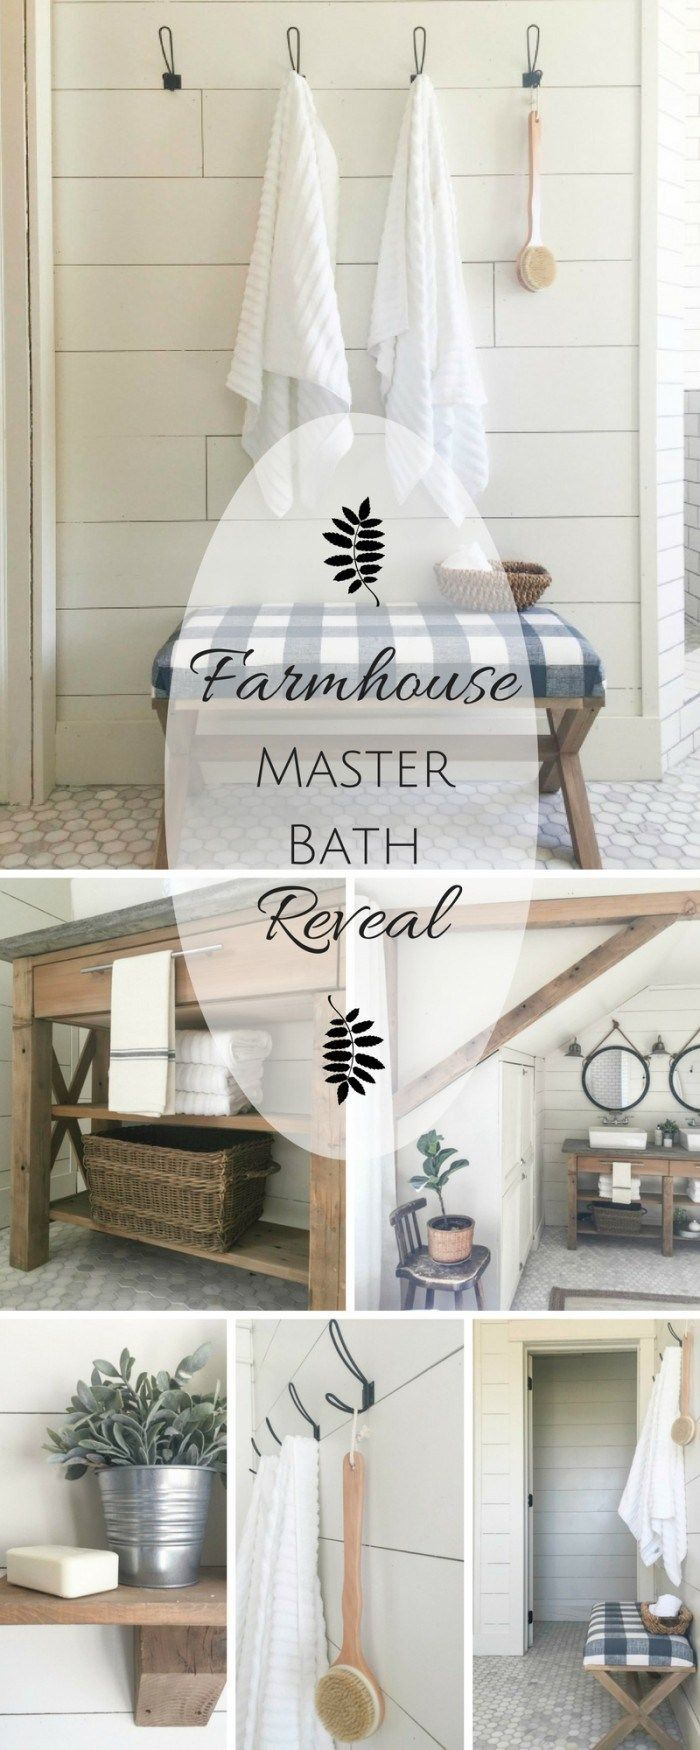 best 20+ farmhouse style bathrooms ideas on pinterest | farm style